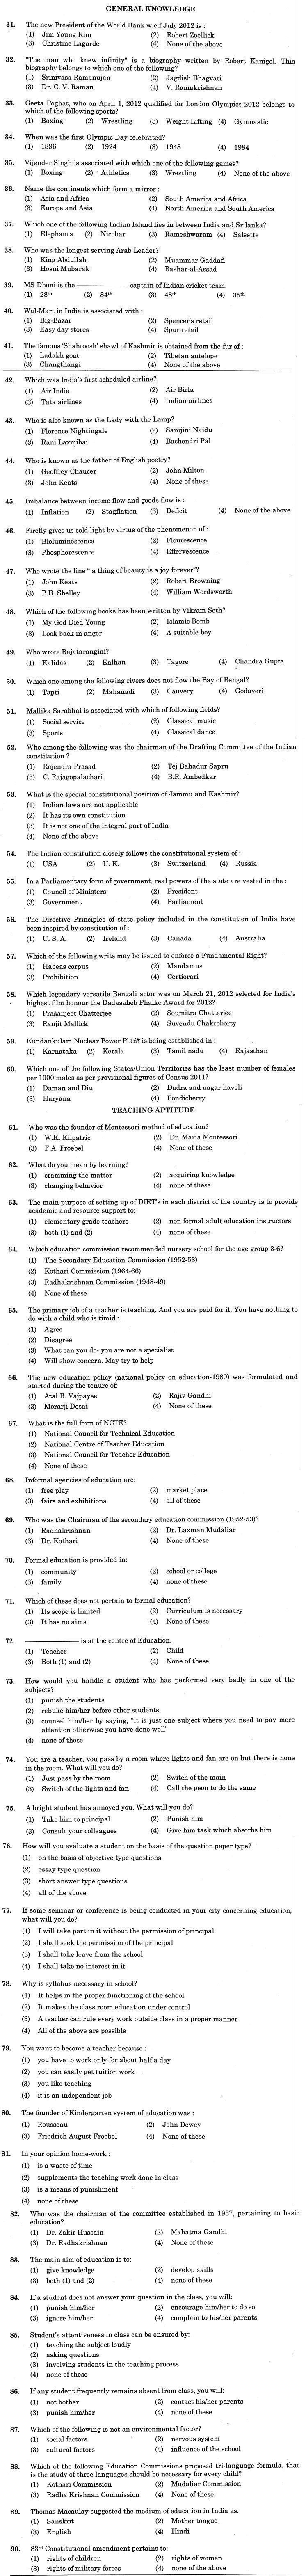 J&K B.Ed. 2012 Question Paper